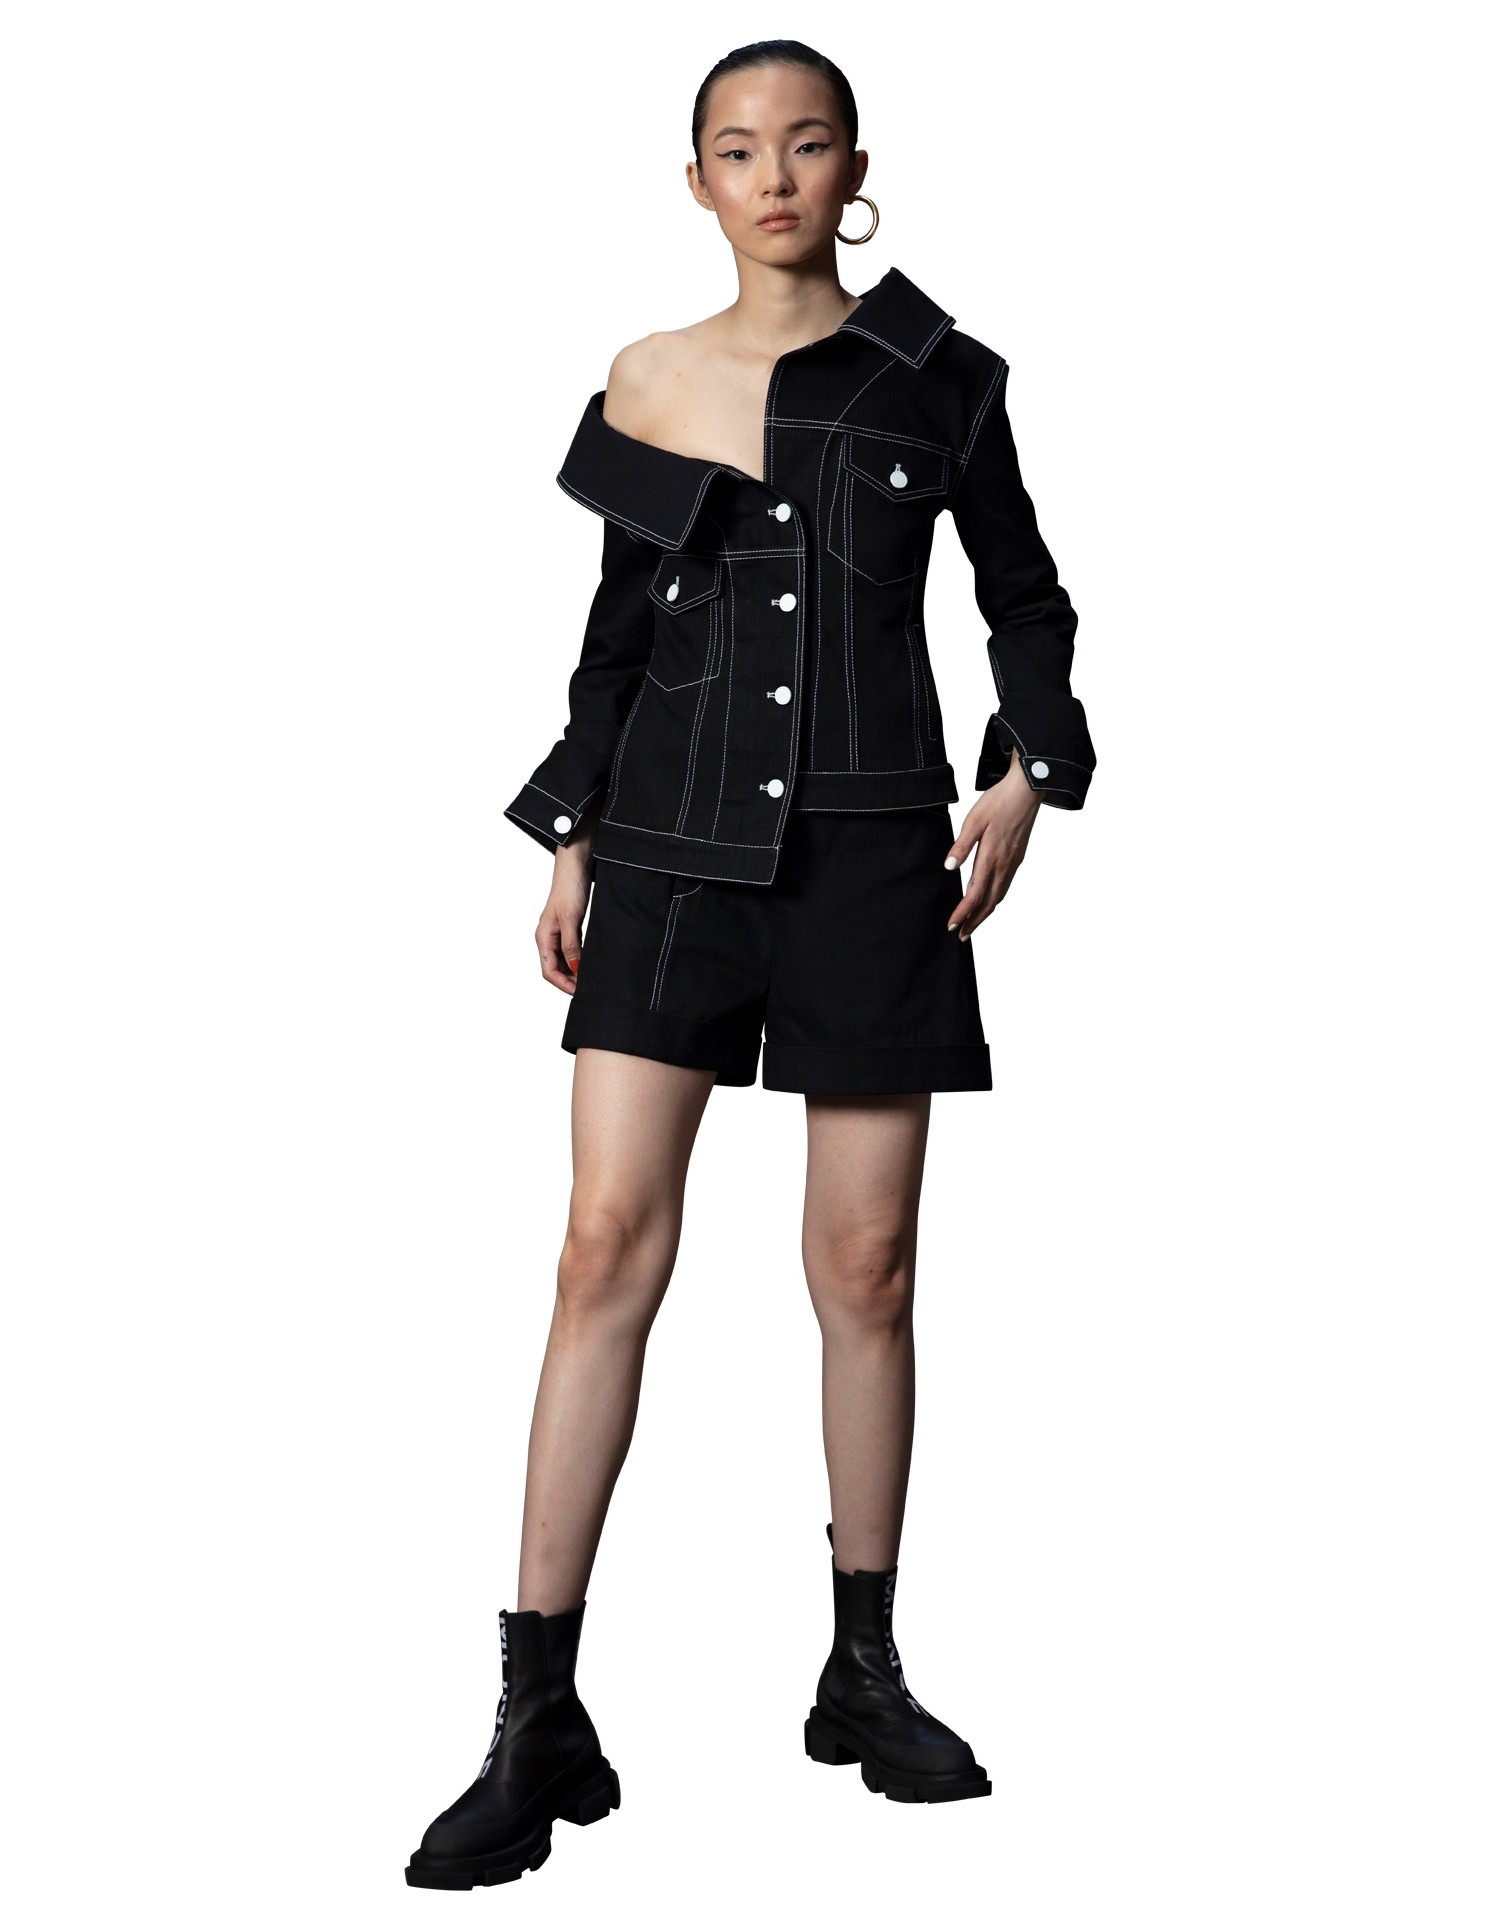 MONSE Crooked Denim Jacket in Black on Model Front Alternate View